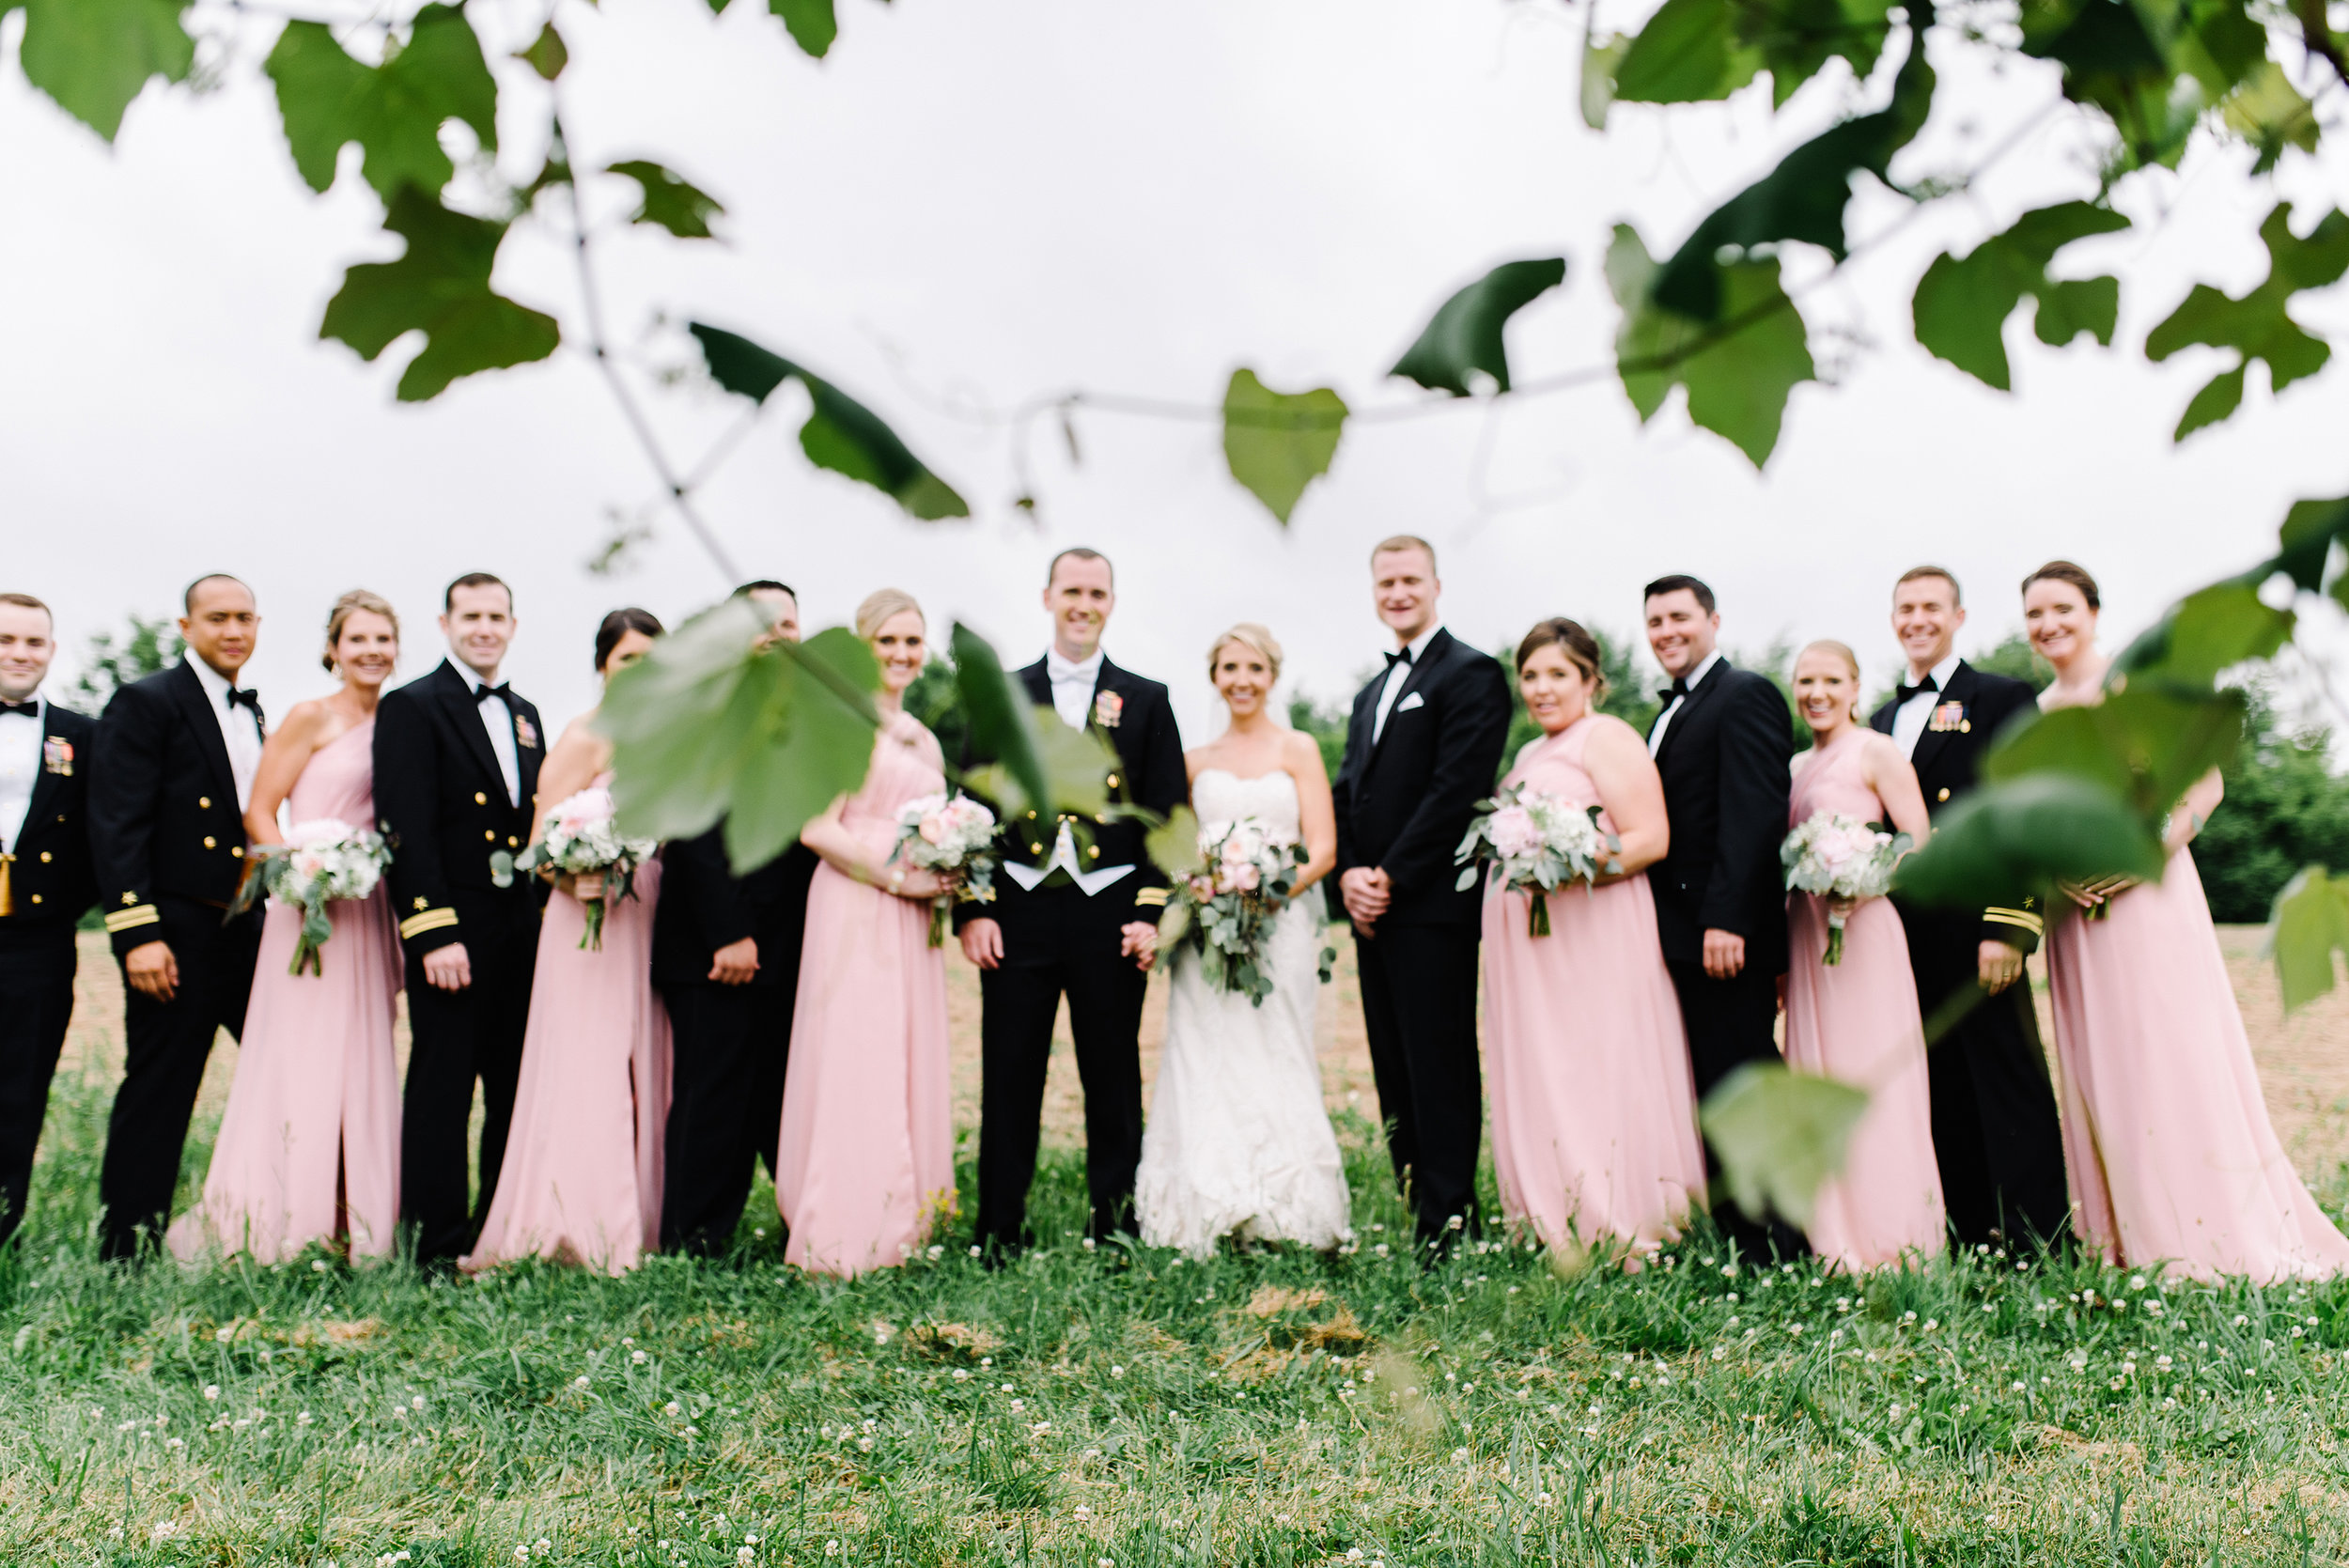 michiganwedding10.jpg